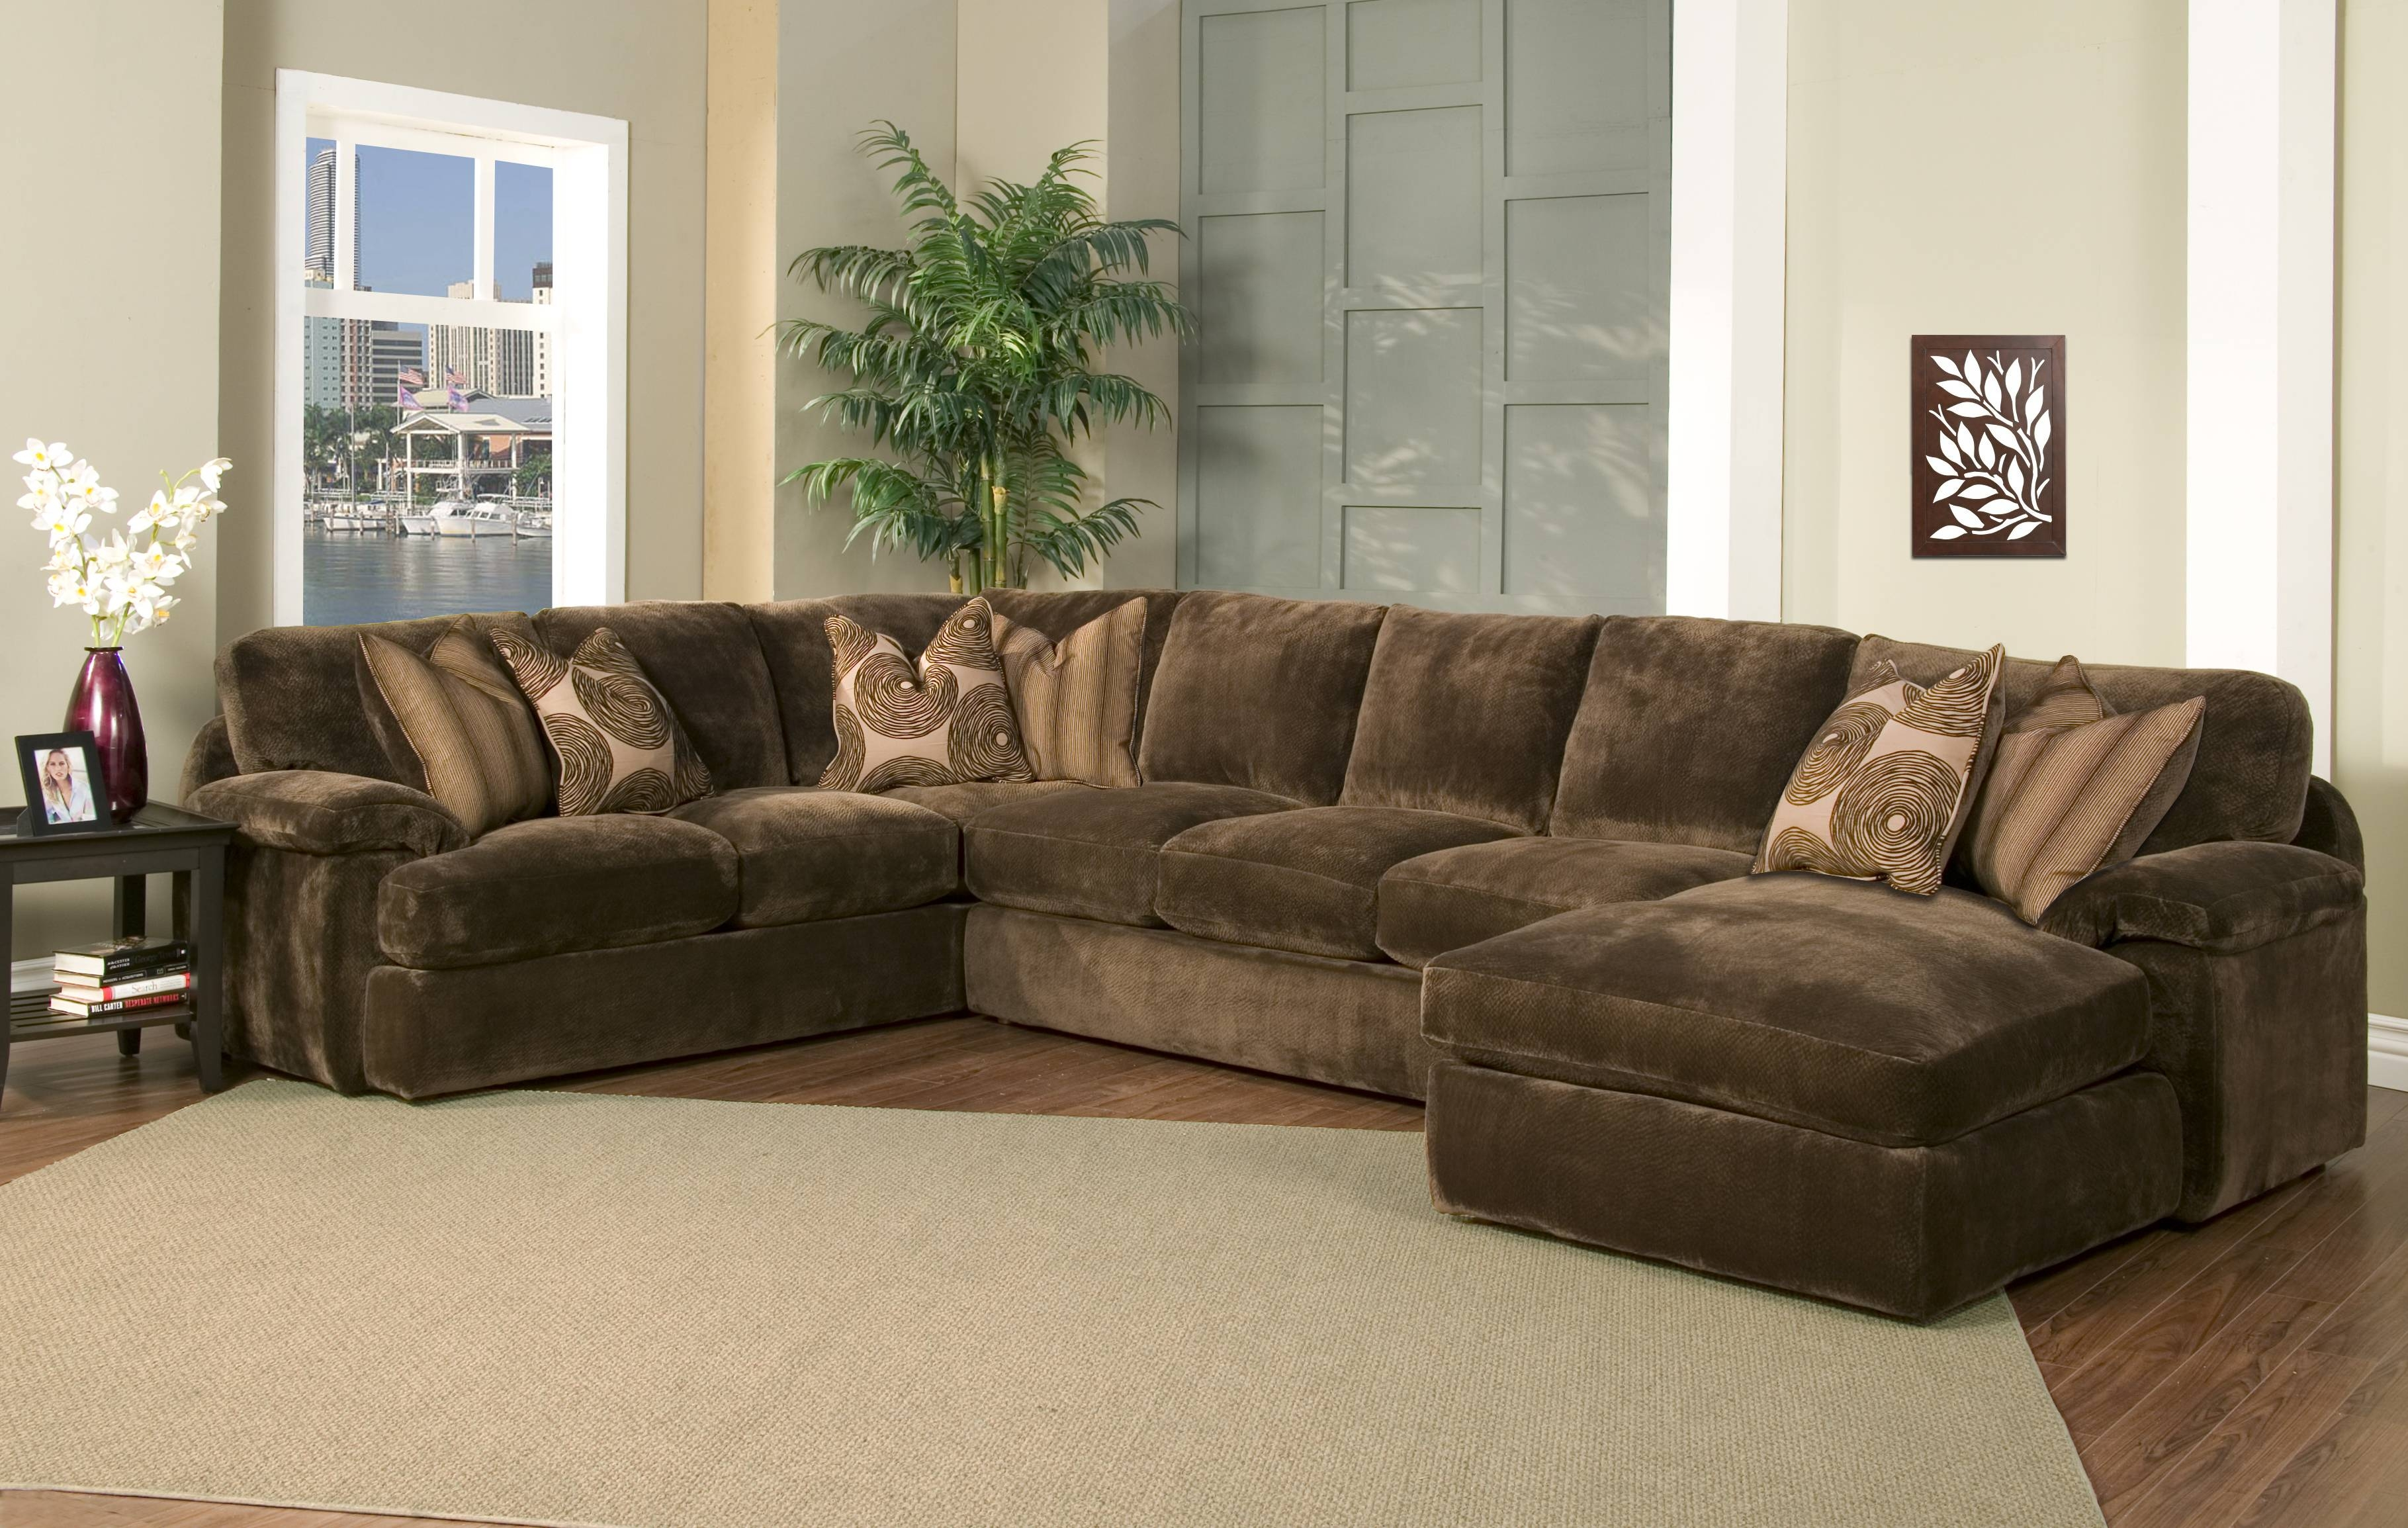 Robert Michaels Sofas And Sectionals regarding Chocolate Brown Sectional Sofa (Image 24 of 30)